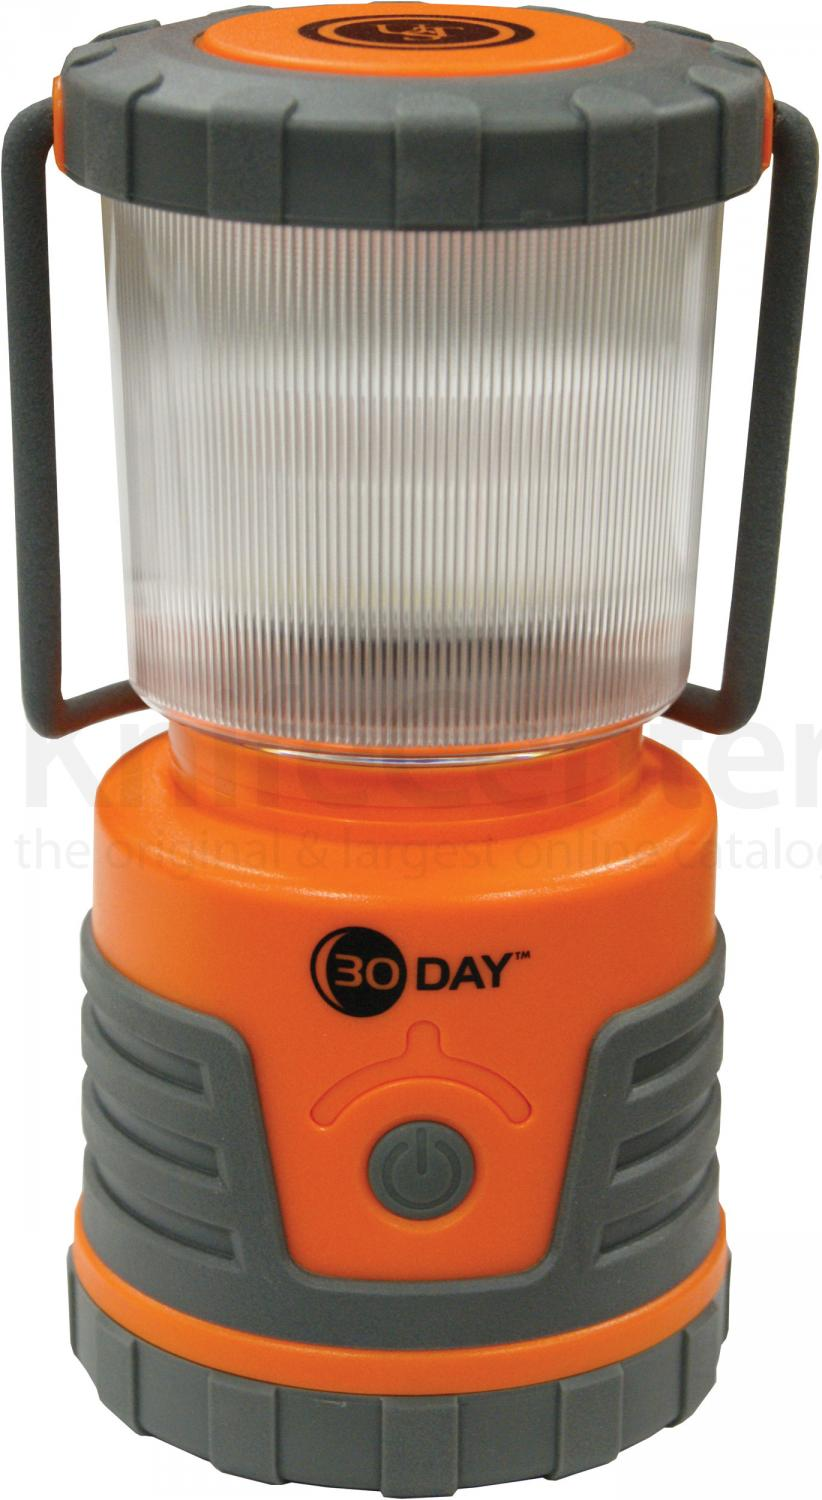 UST Ultimate Survival 30 Day LED Lantern 300 Max Lumens, Orange (20-PL20C3D-08)